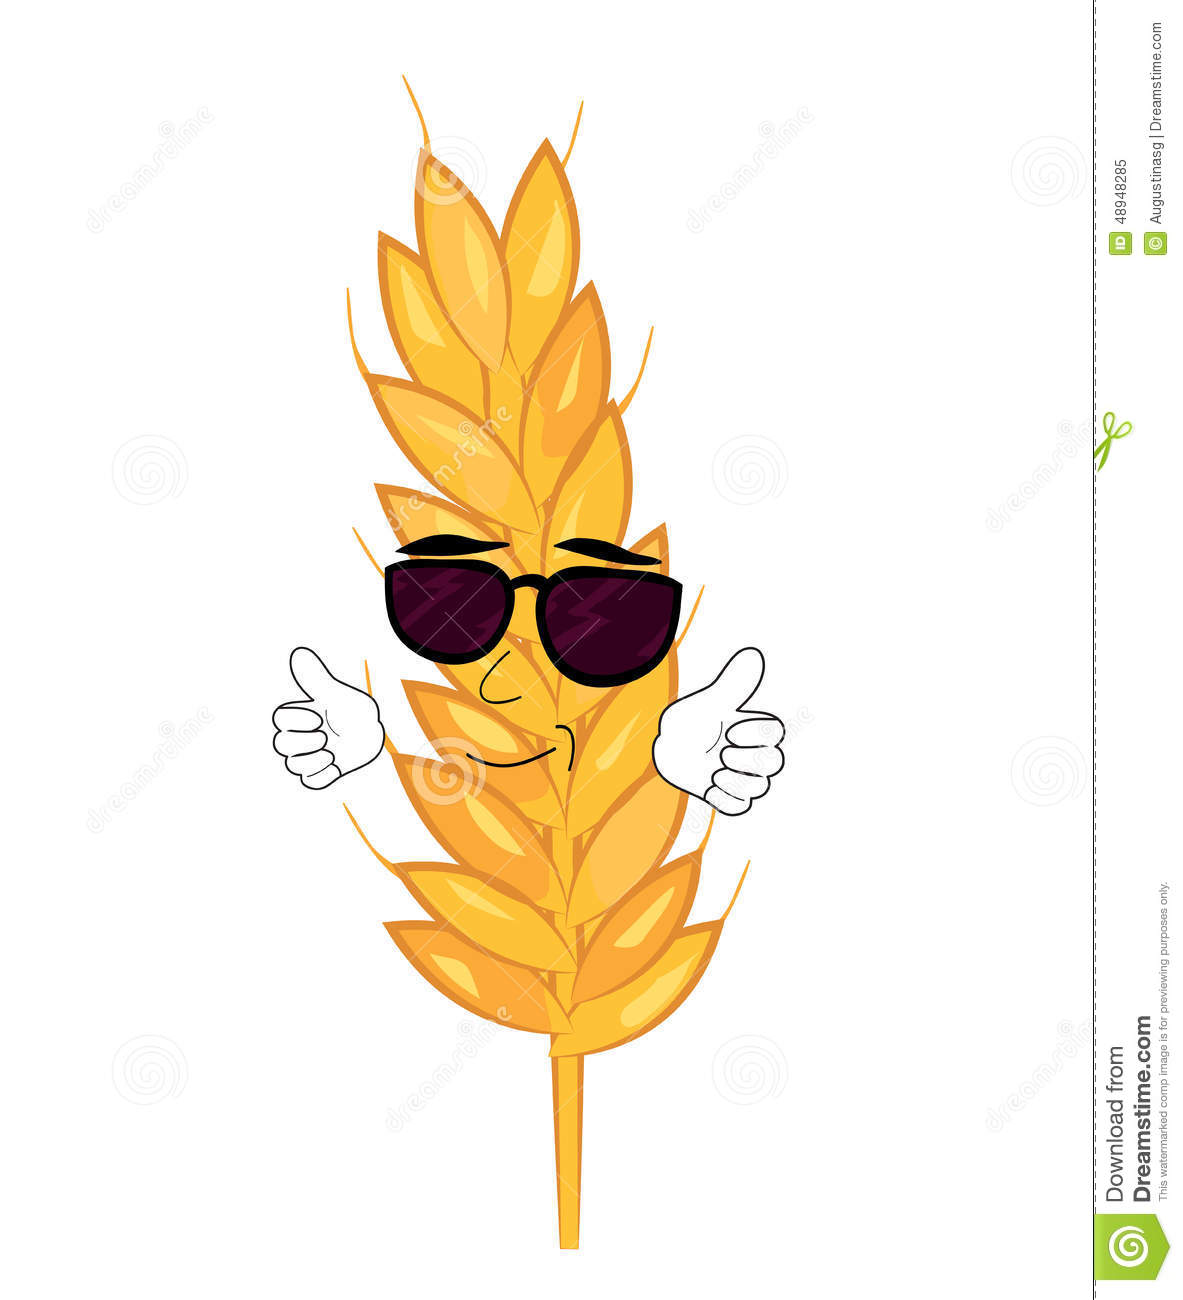 Cool Wheat Cartoon Stock Illustration - Image: 48948285 French Menu Clipart